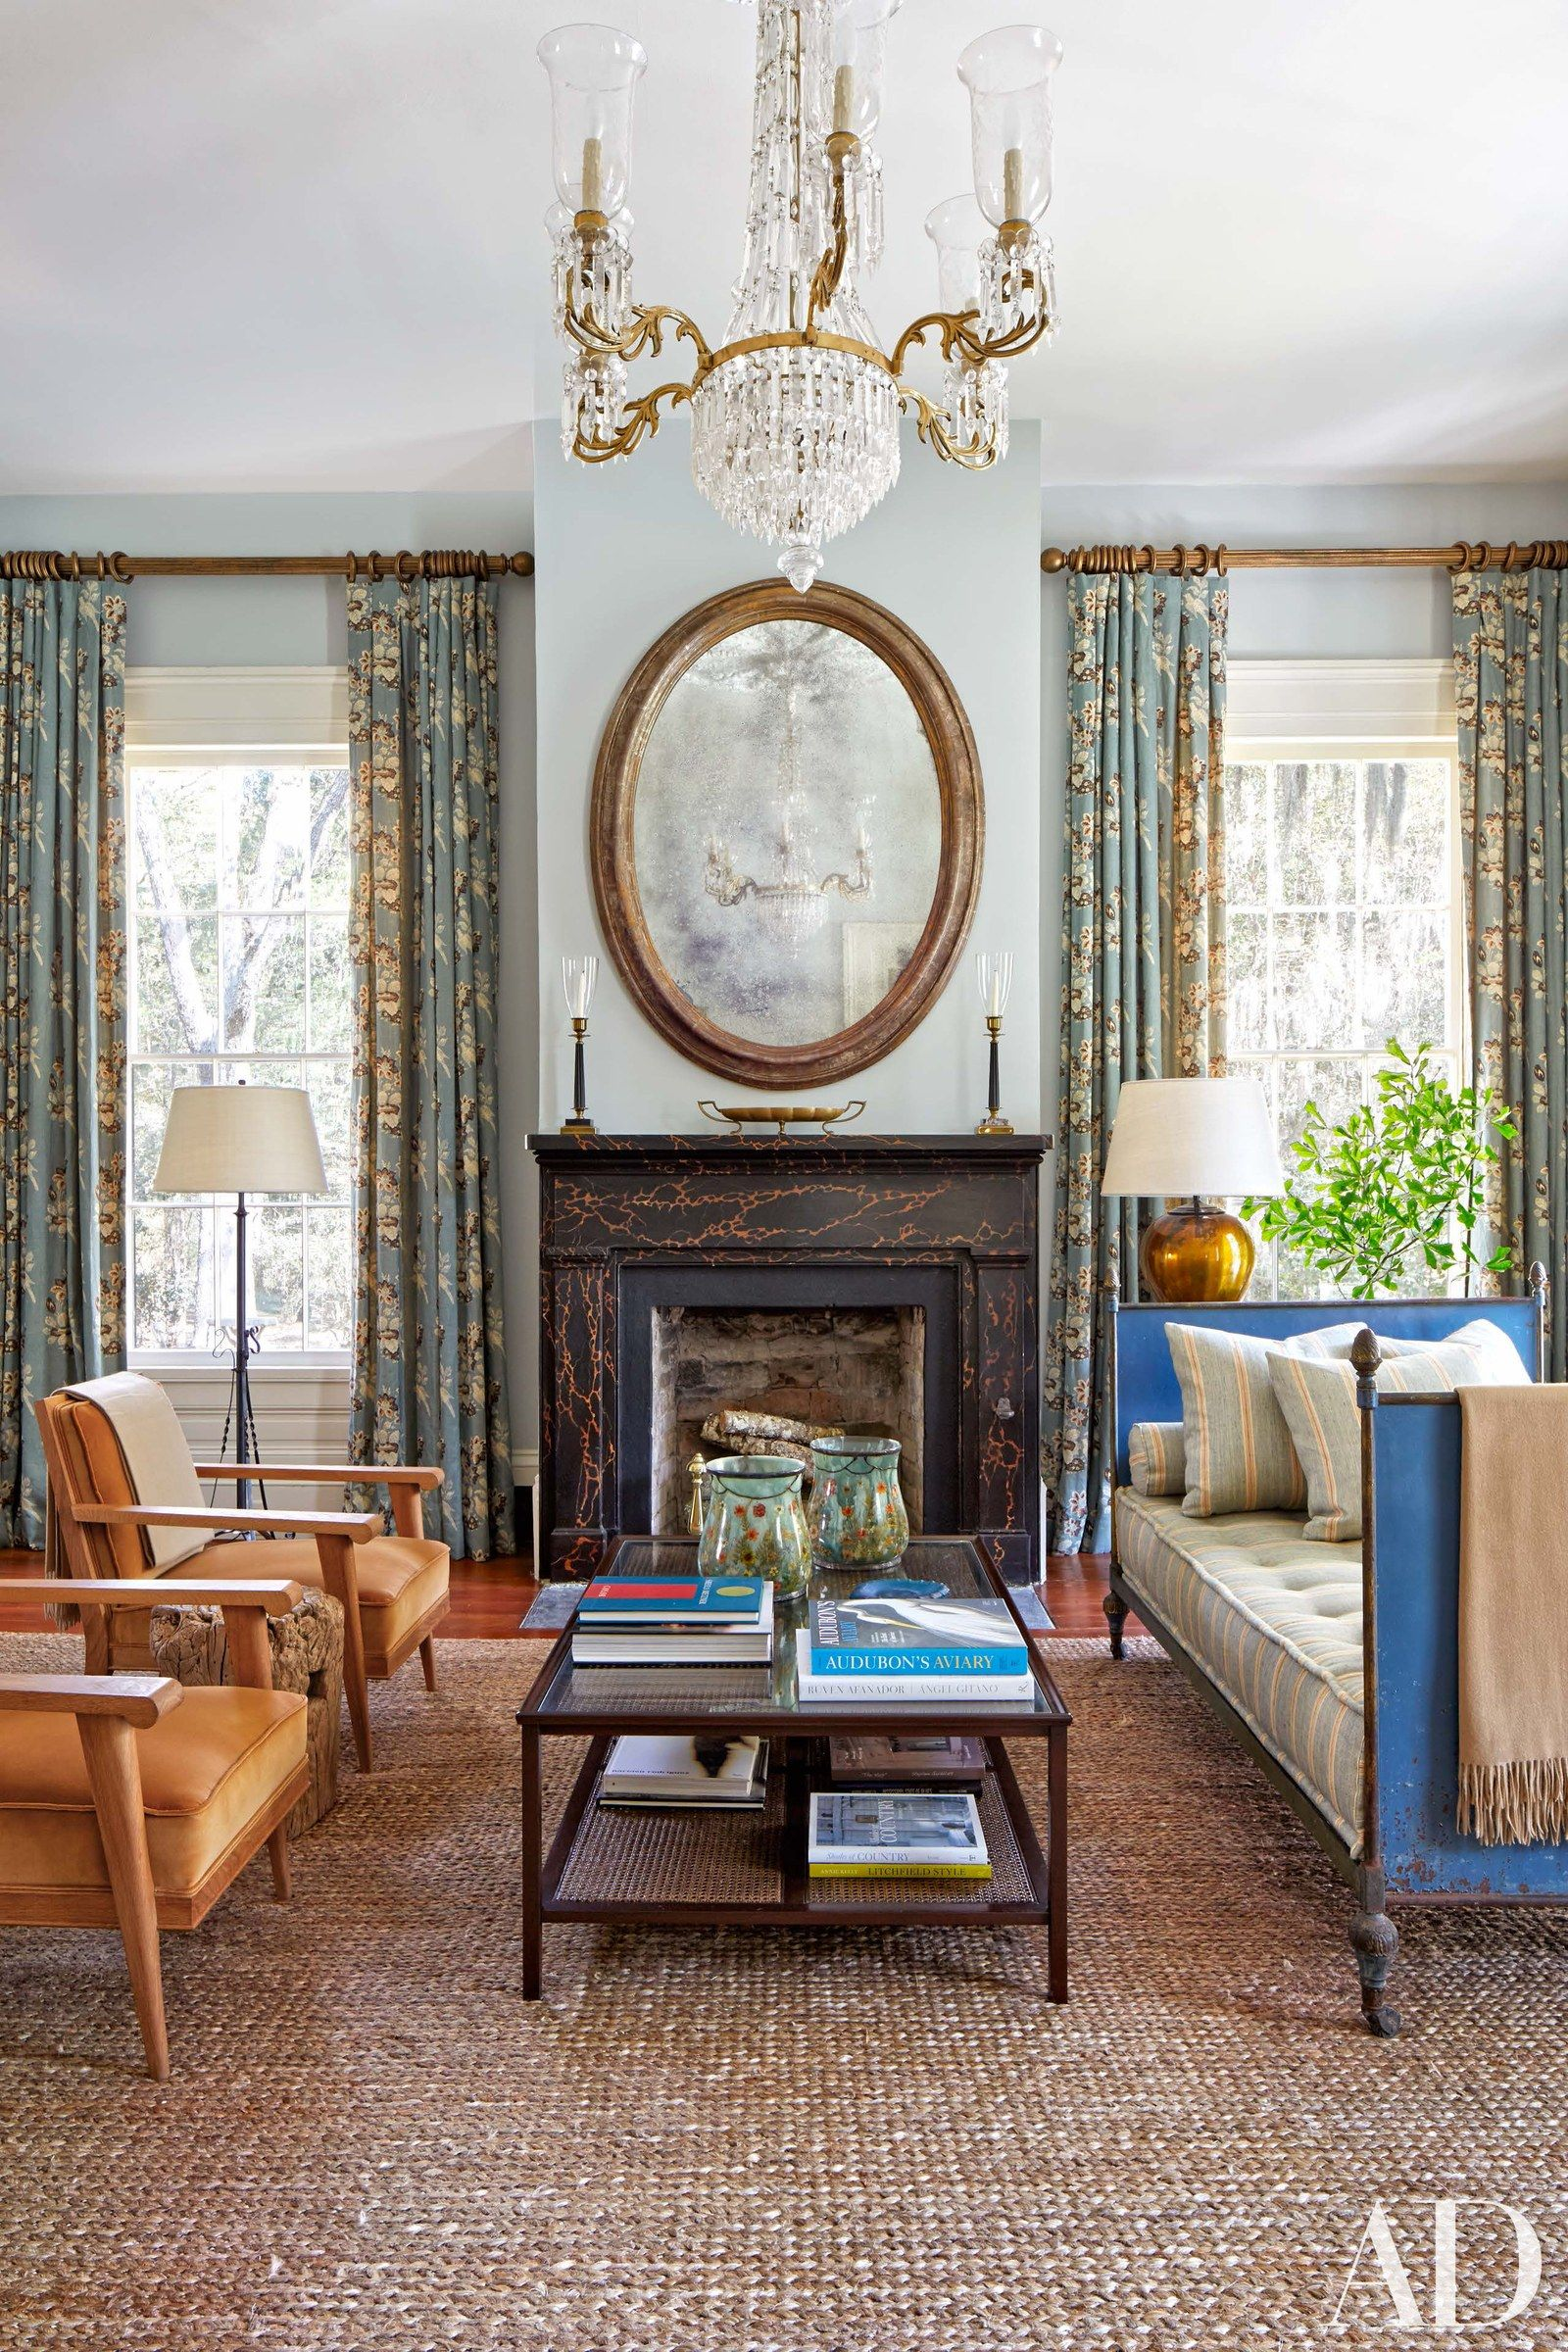 Help Decorate My Living Room: Tate Taylor, The Help Director, Renovates An 1830s